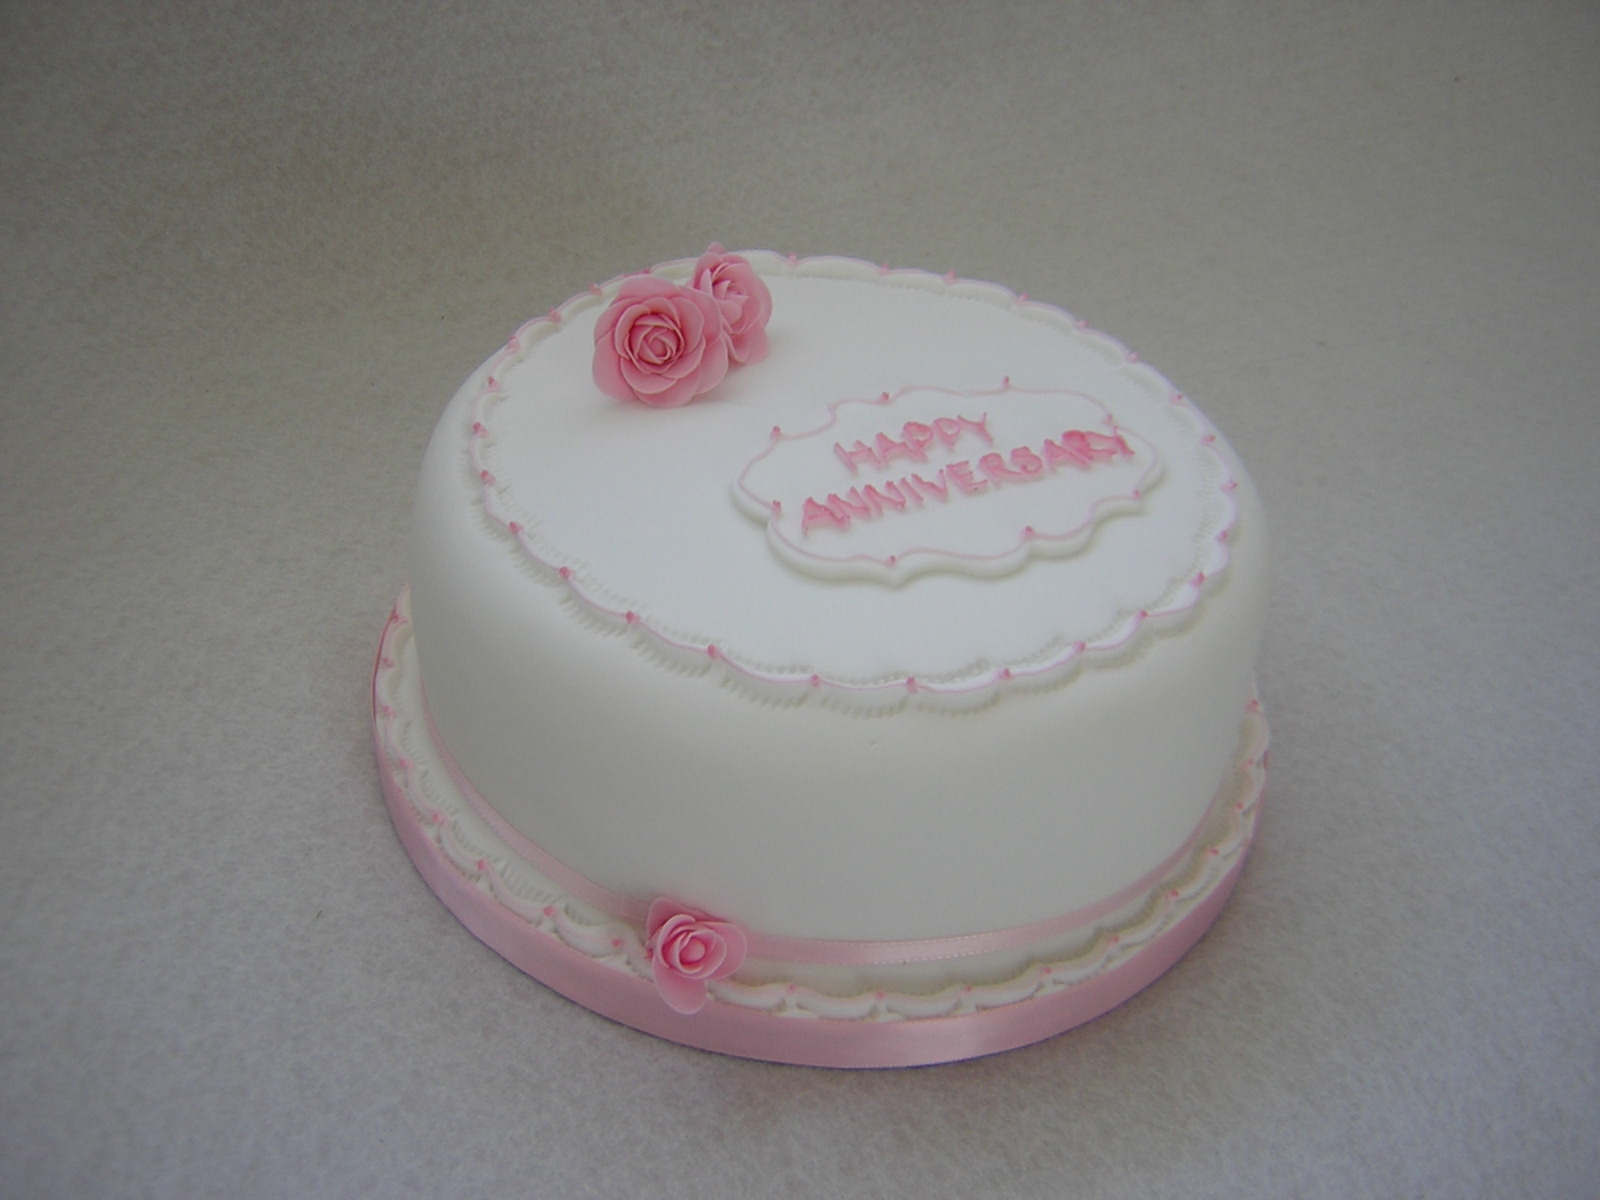 Cake Pictures For Anniversary : Anniversary Cakes - Julie s Creative CakesJulie s Creative ...